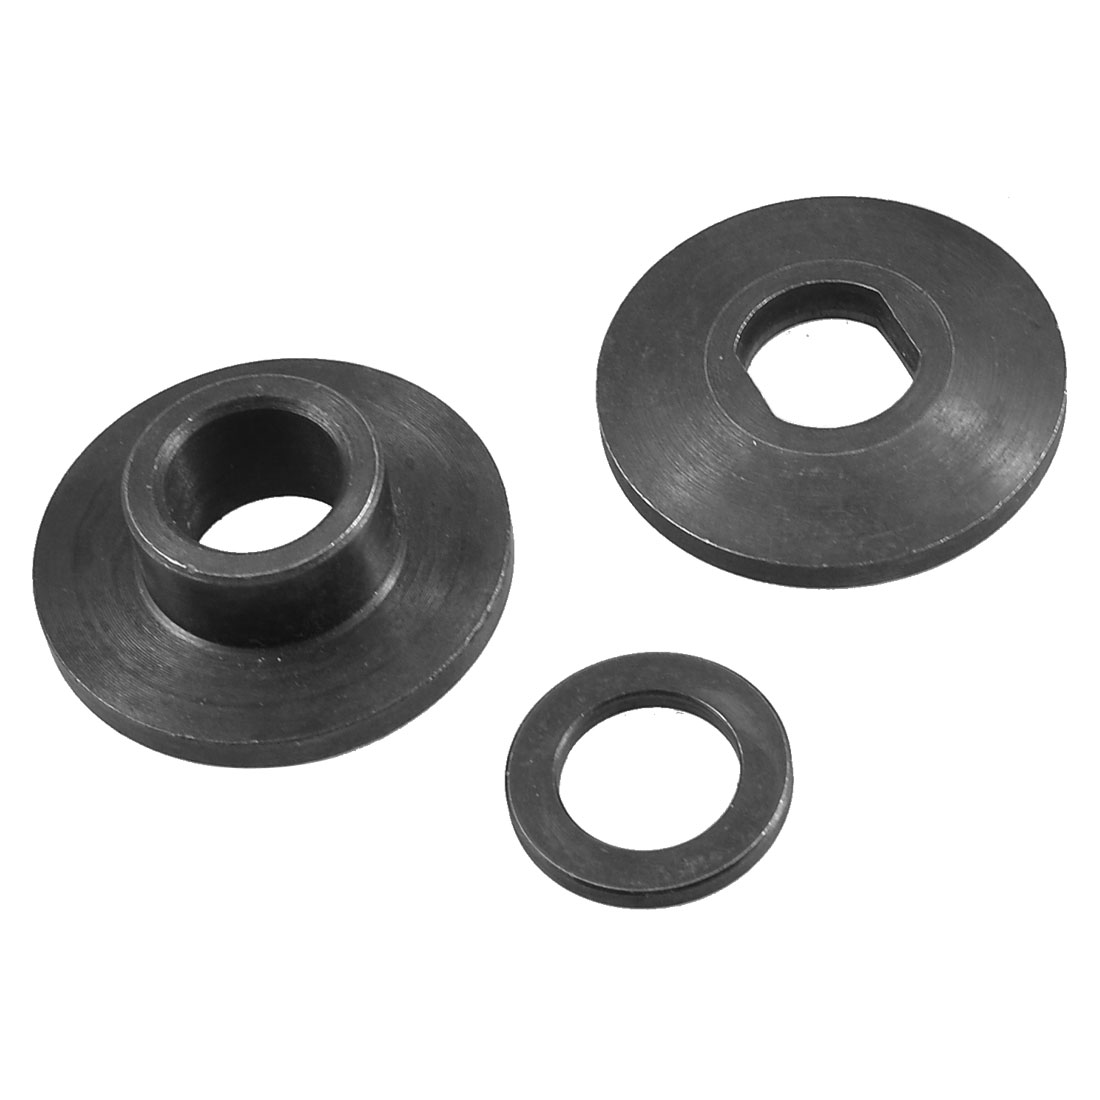 Replacement 44mm Dia Inner Outer Flange for Digimate 255 Cut off Machine